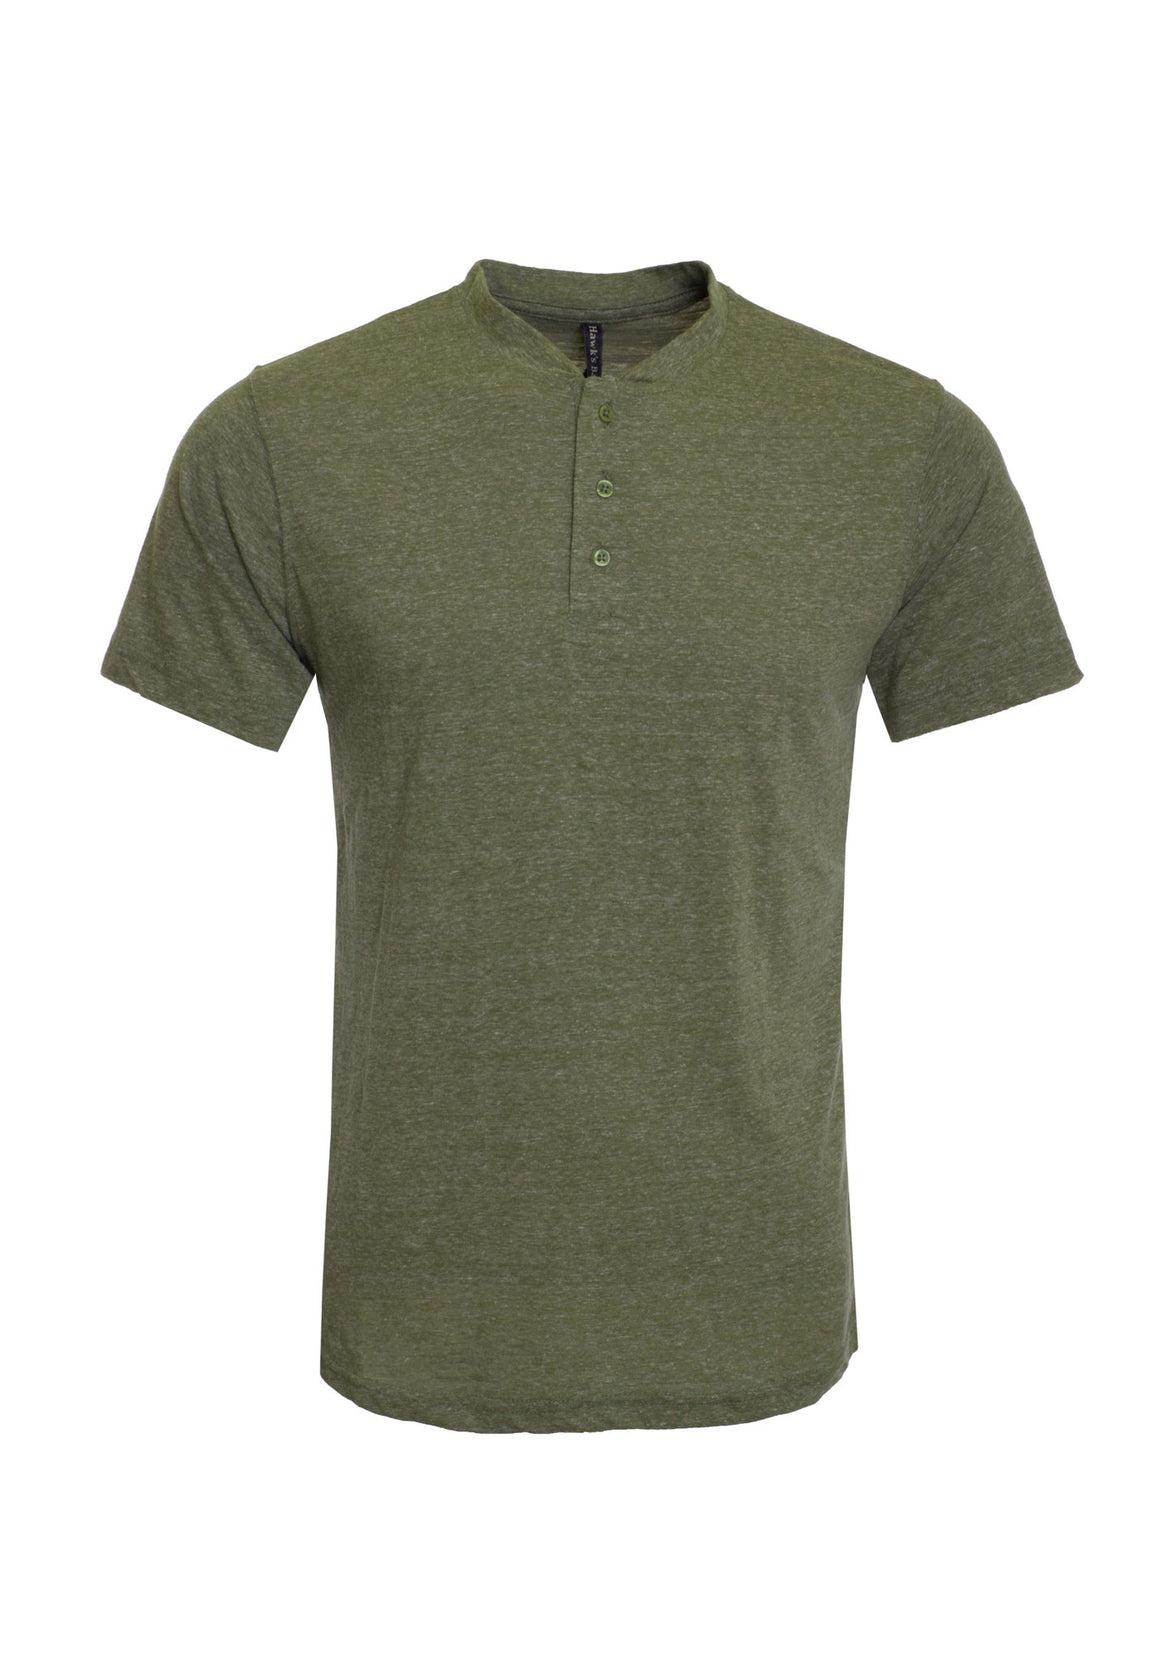 Men's Henley Short Sleeve T-Shirt